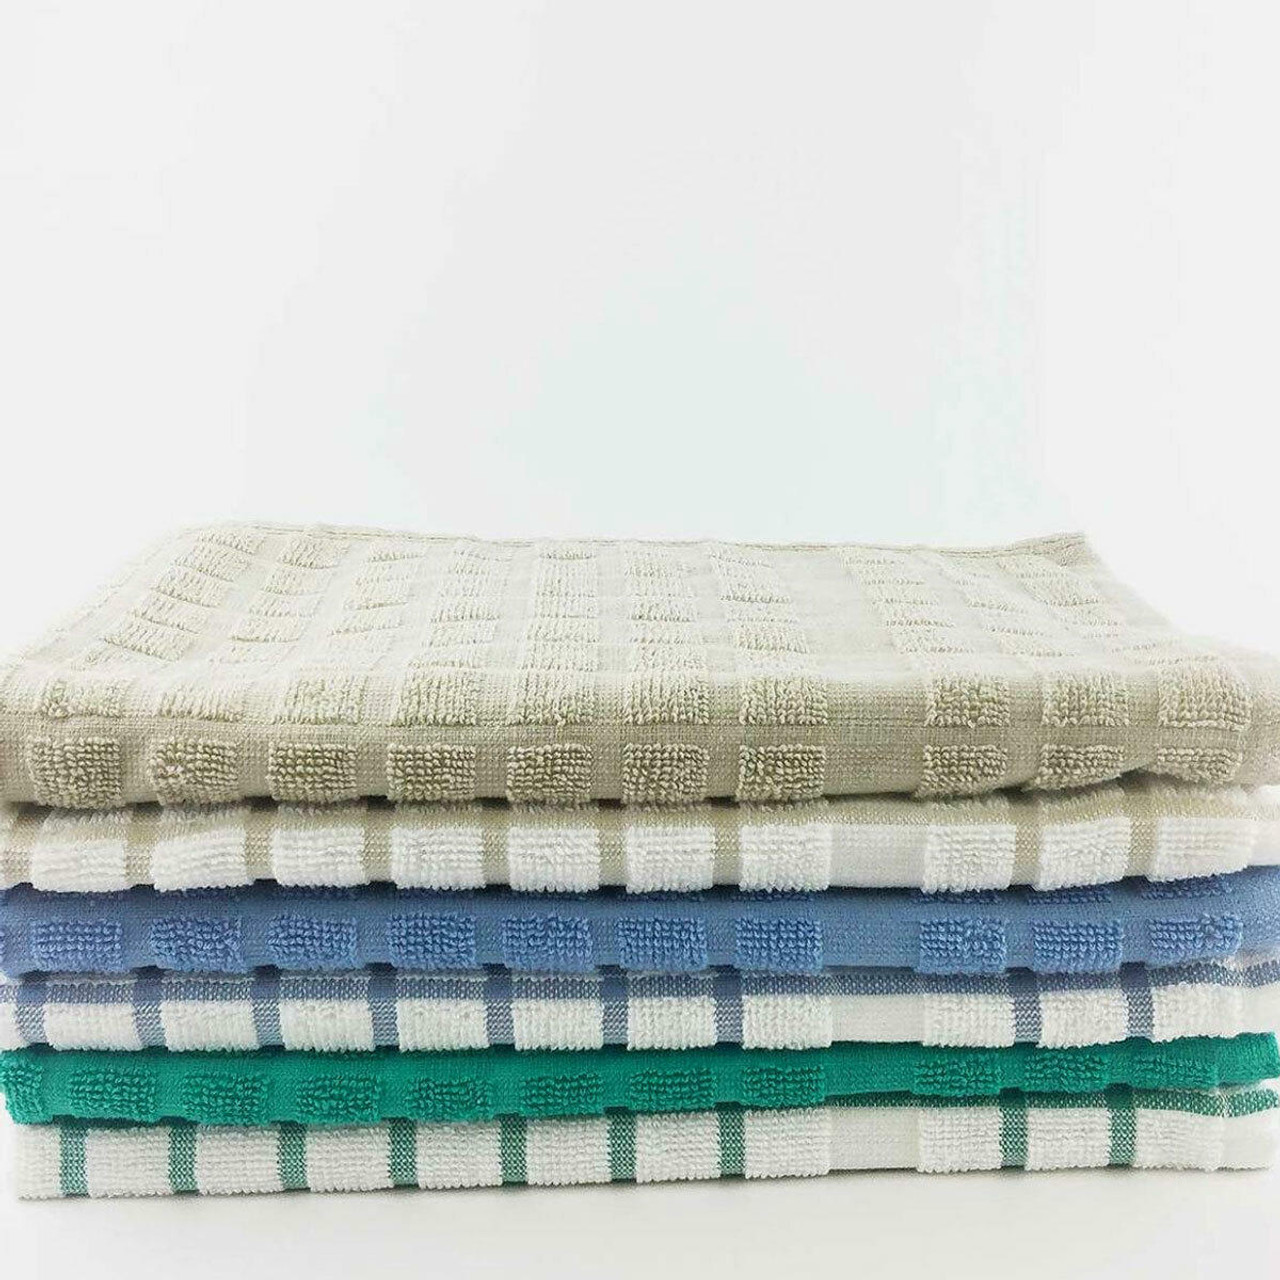 Martex Wovens by WestPoint Hospitality MARTEX or KITCHEN TOWEL or 15X25 or 100percent RING SPUN COTTON LOOPS or 12 DZ PER CASE